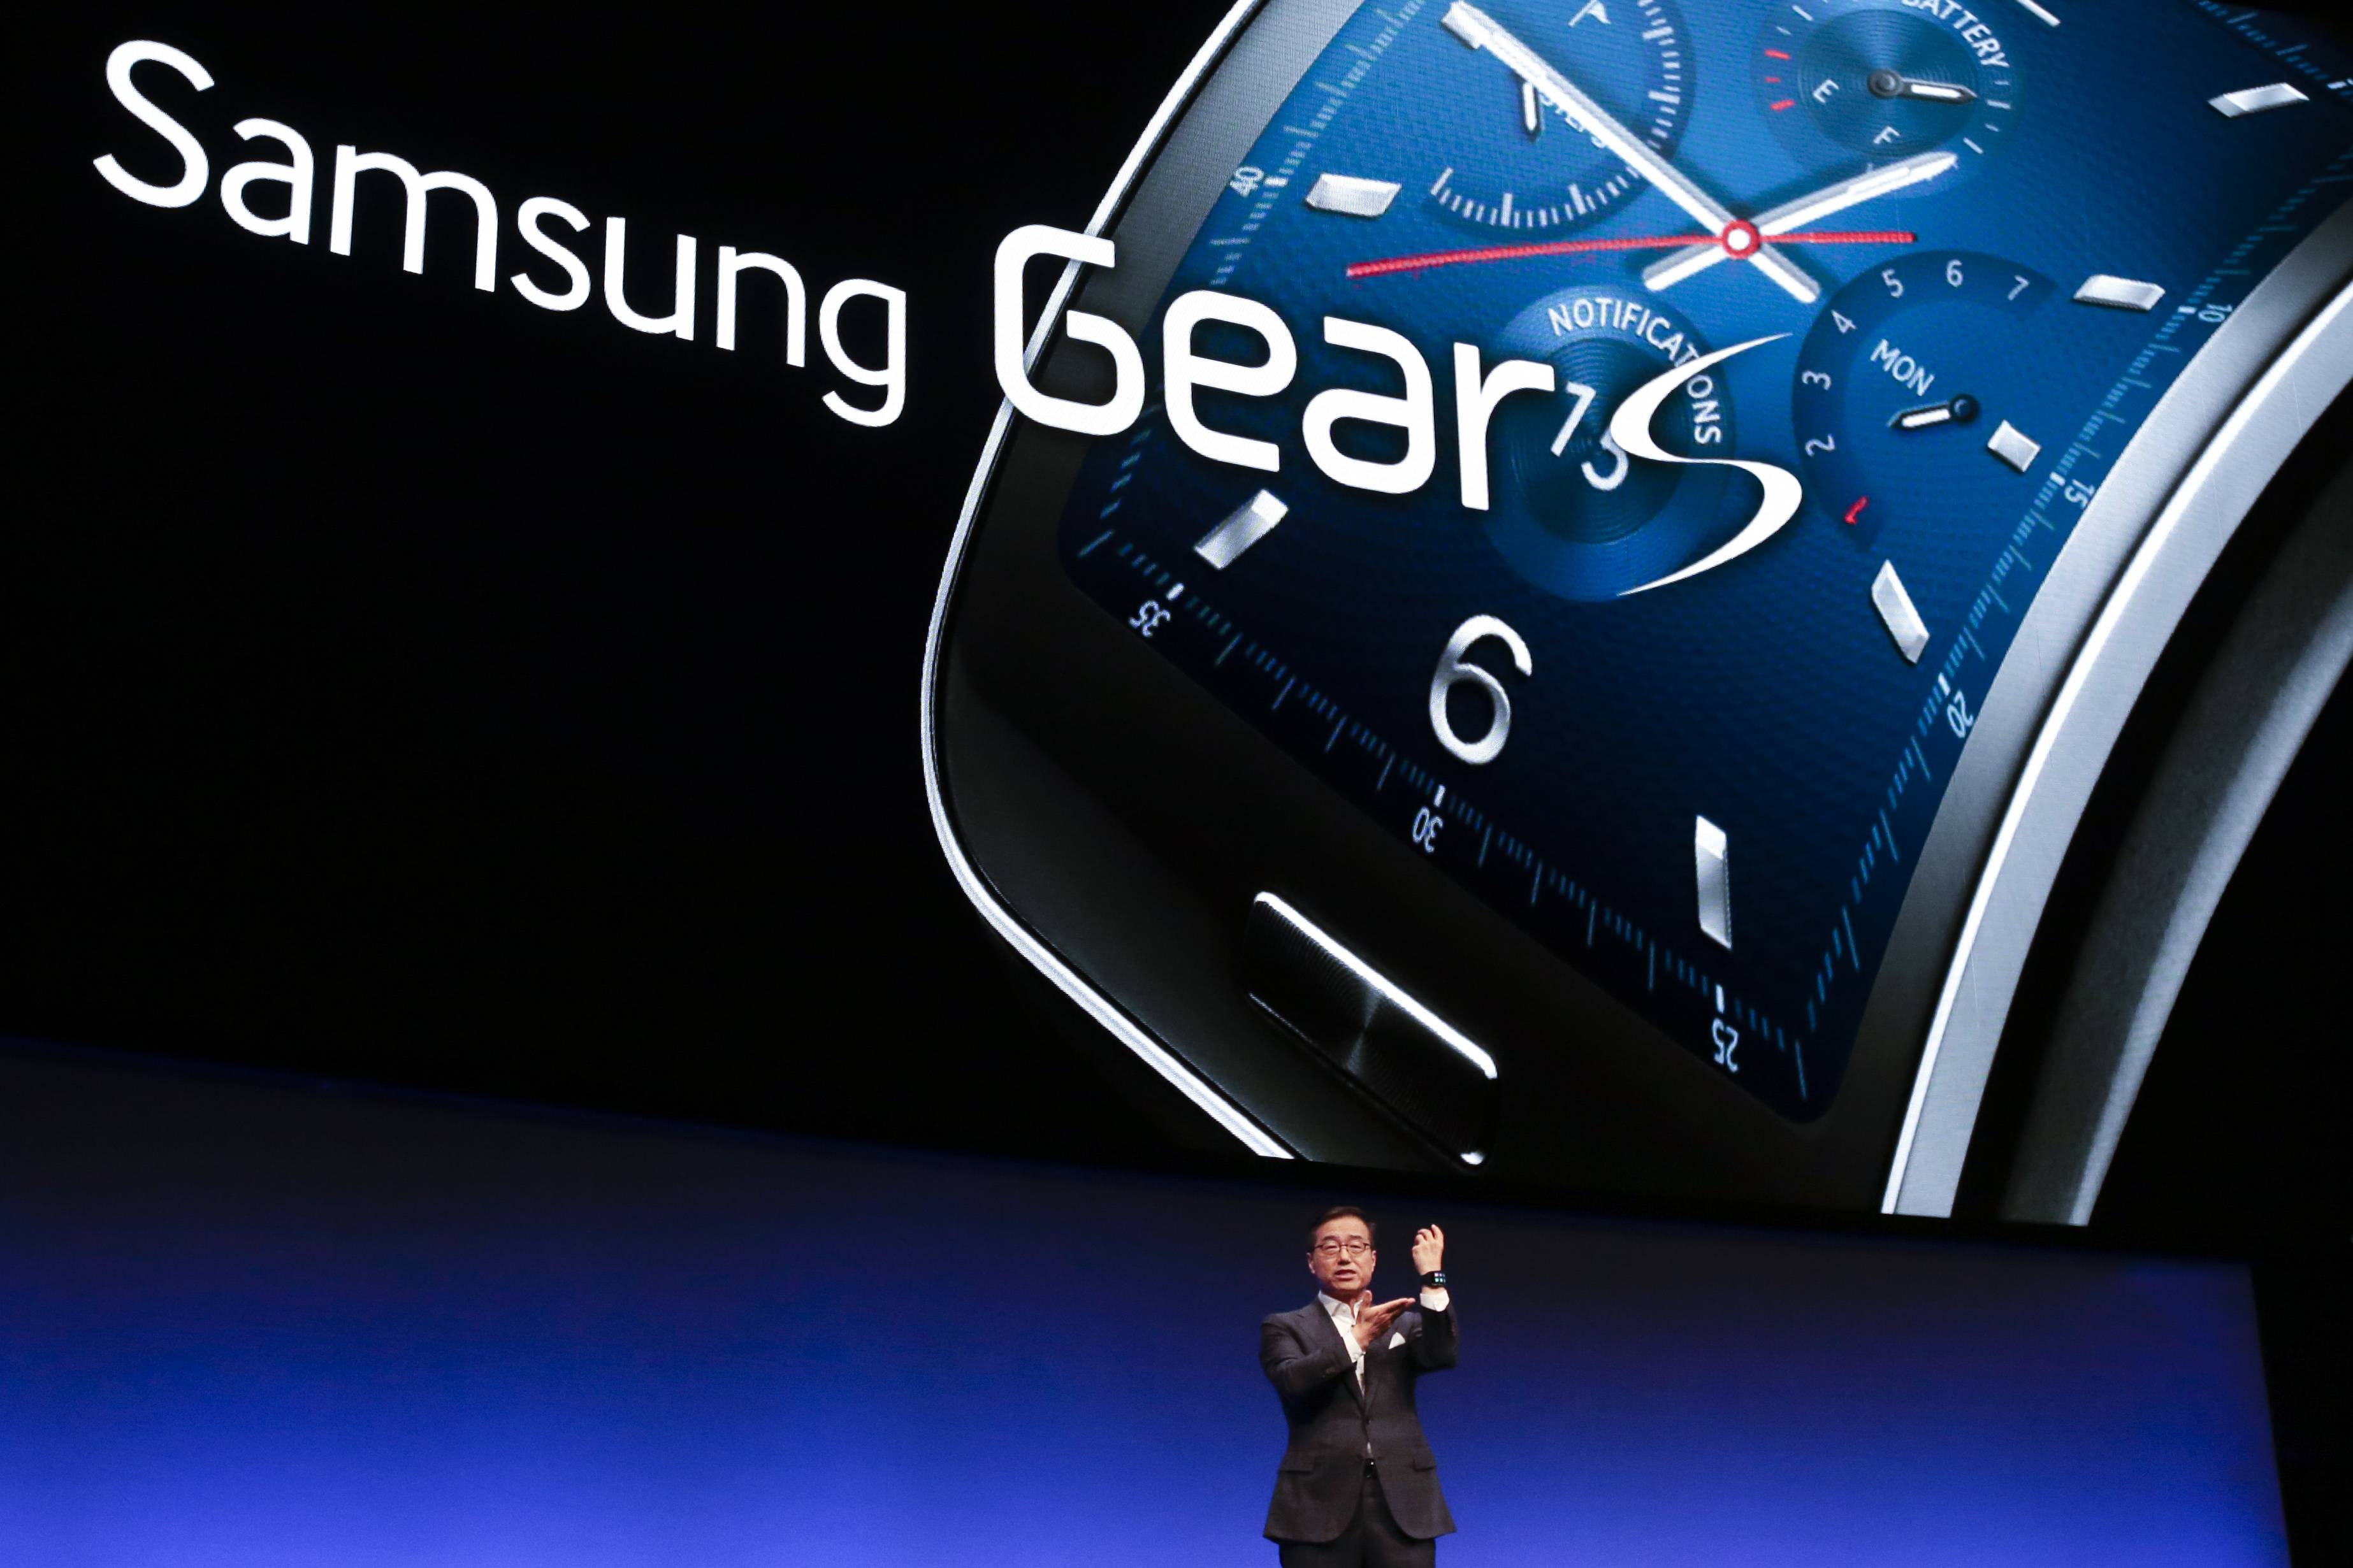 DJ Lee, Executive Vice President of Samsung, presents a Samsung Gear S smartwatch Wednesday during his keynote speech at an unpacked event of Samsung ahead of the consumer electronic fair IFA in Berlin.